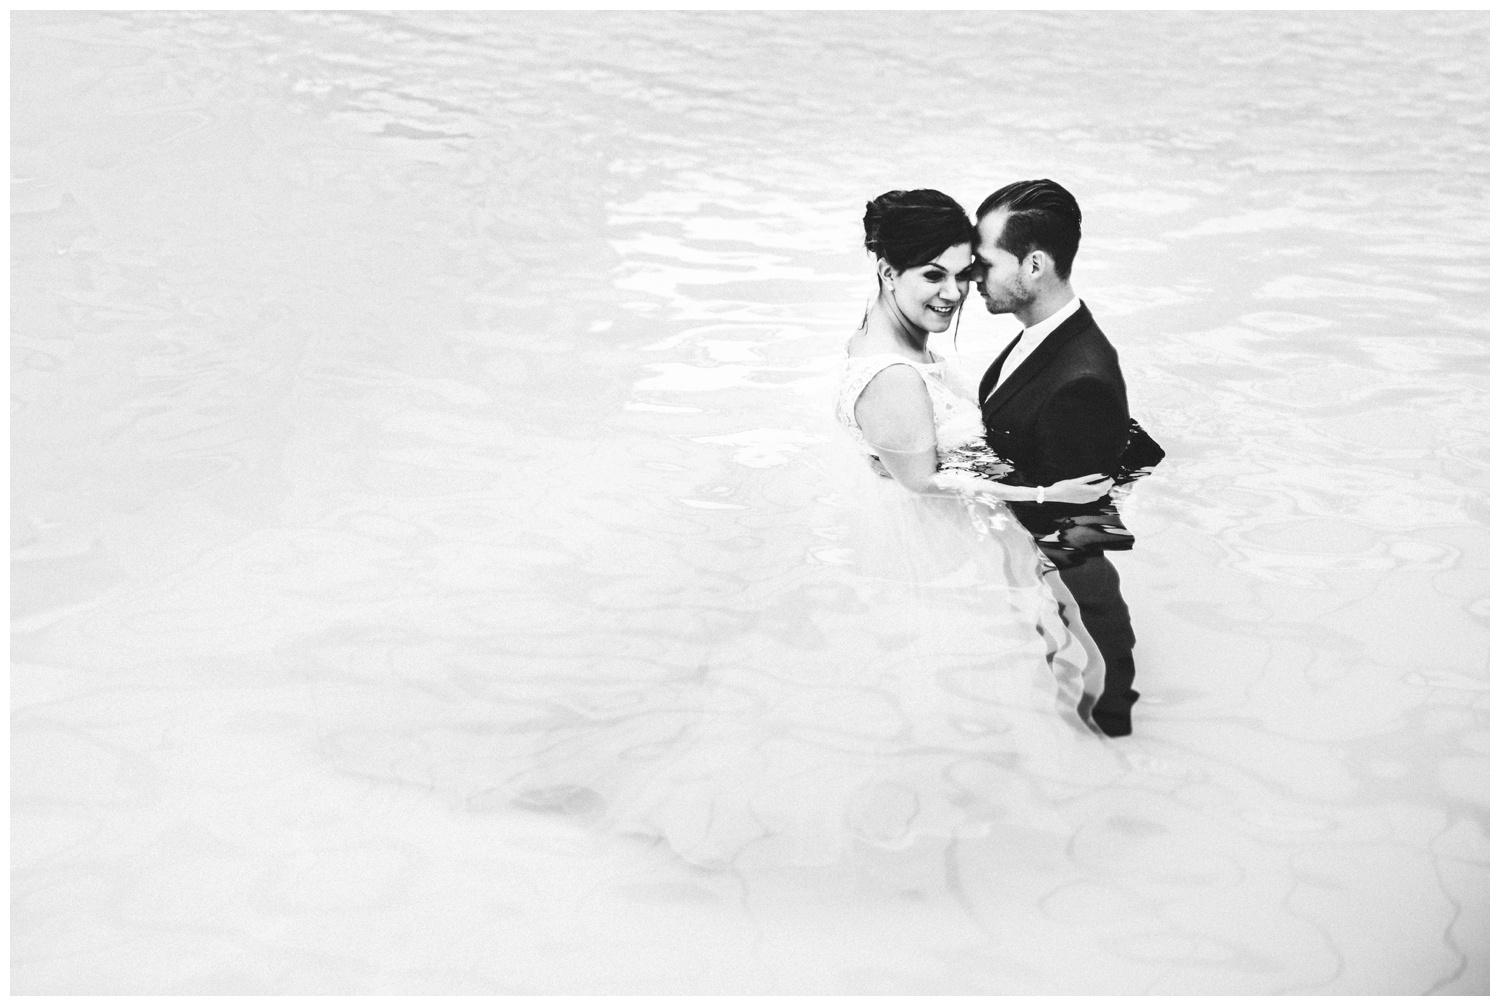 underwater-wedding-luxembourg-seance-mariage-sous-eau-007